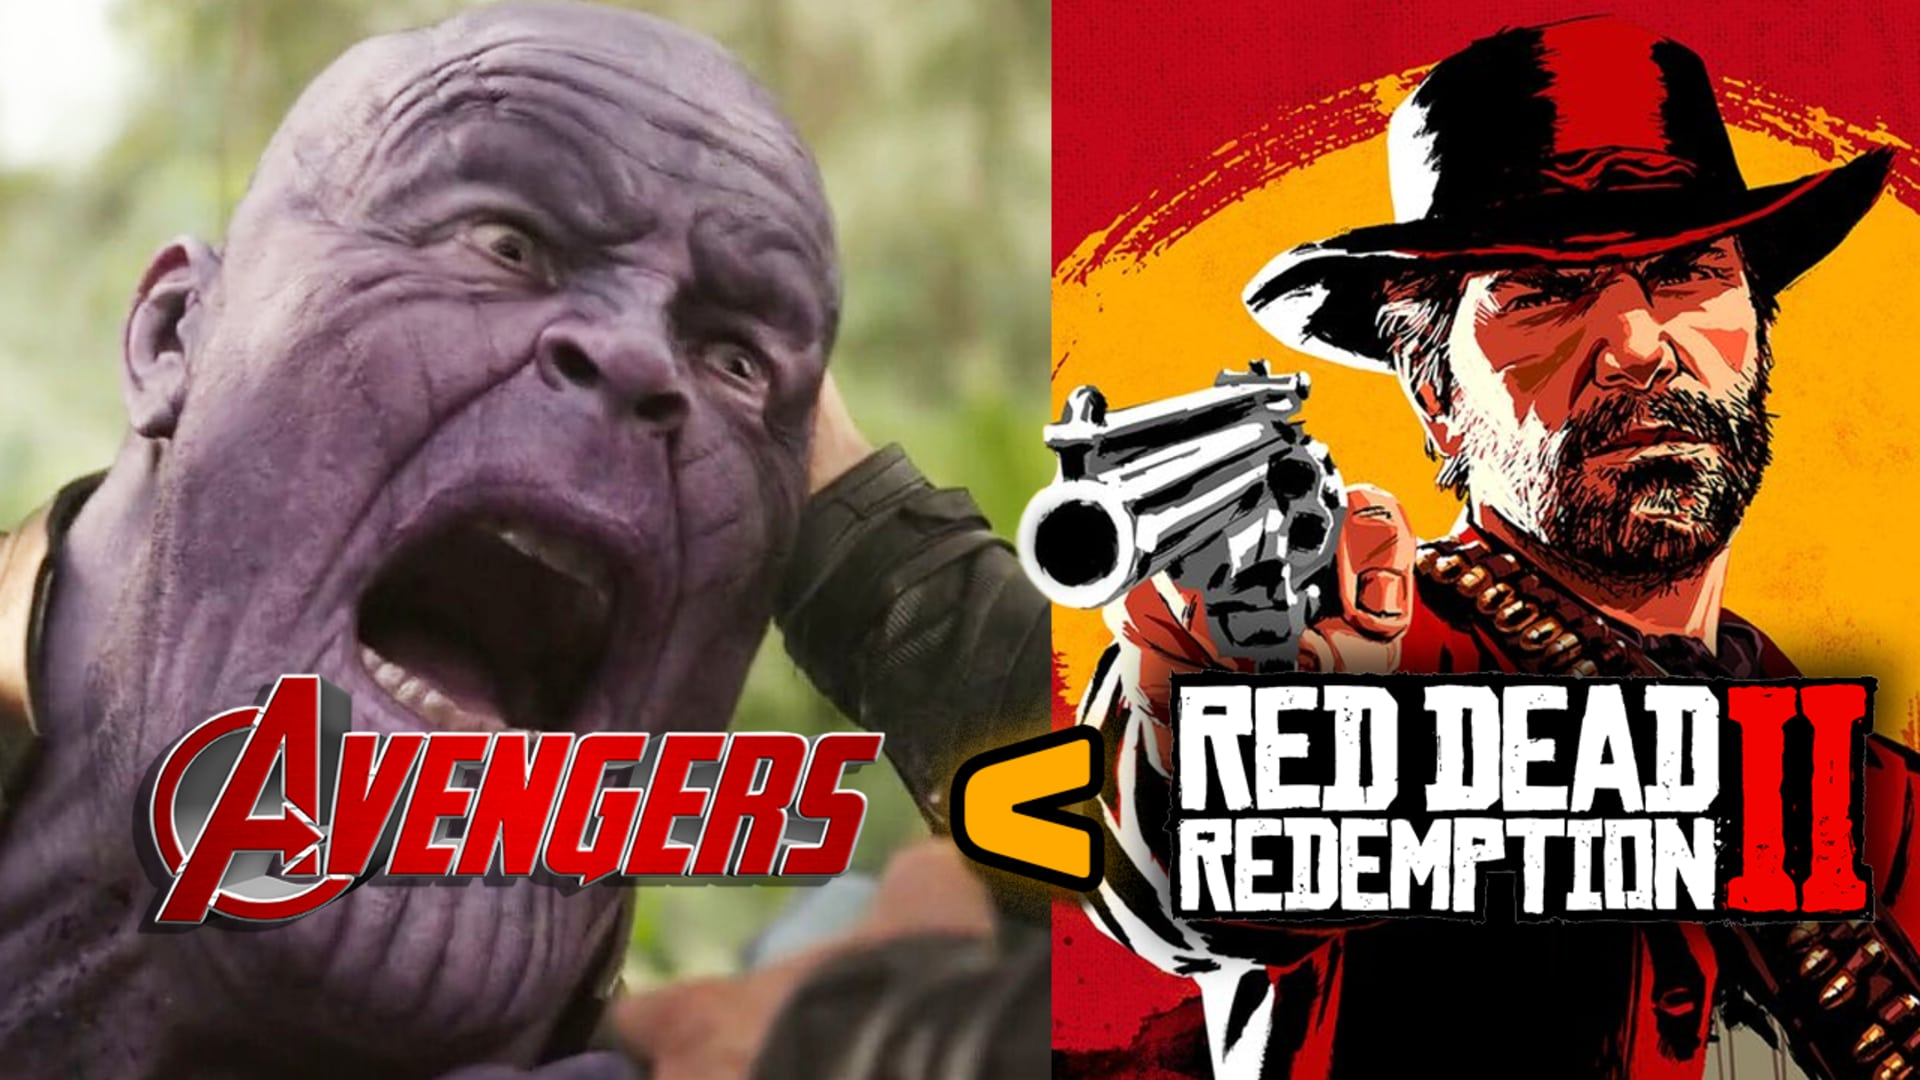 Red Dead 2 BIGGER THAN AVENGERS? Should It Be? - Dude Soup Podcast